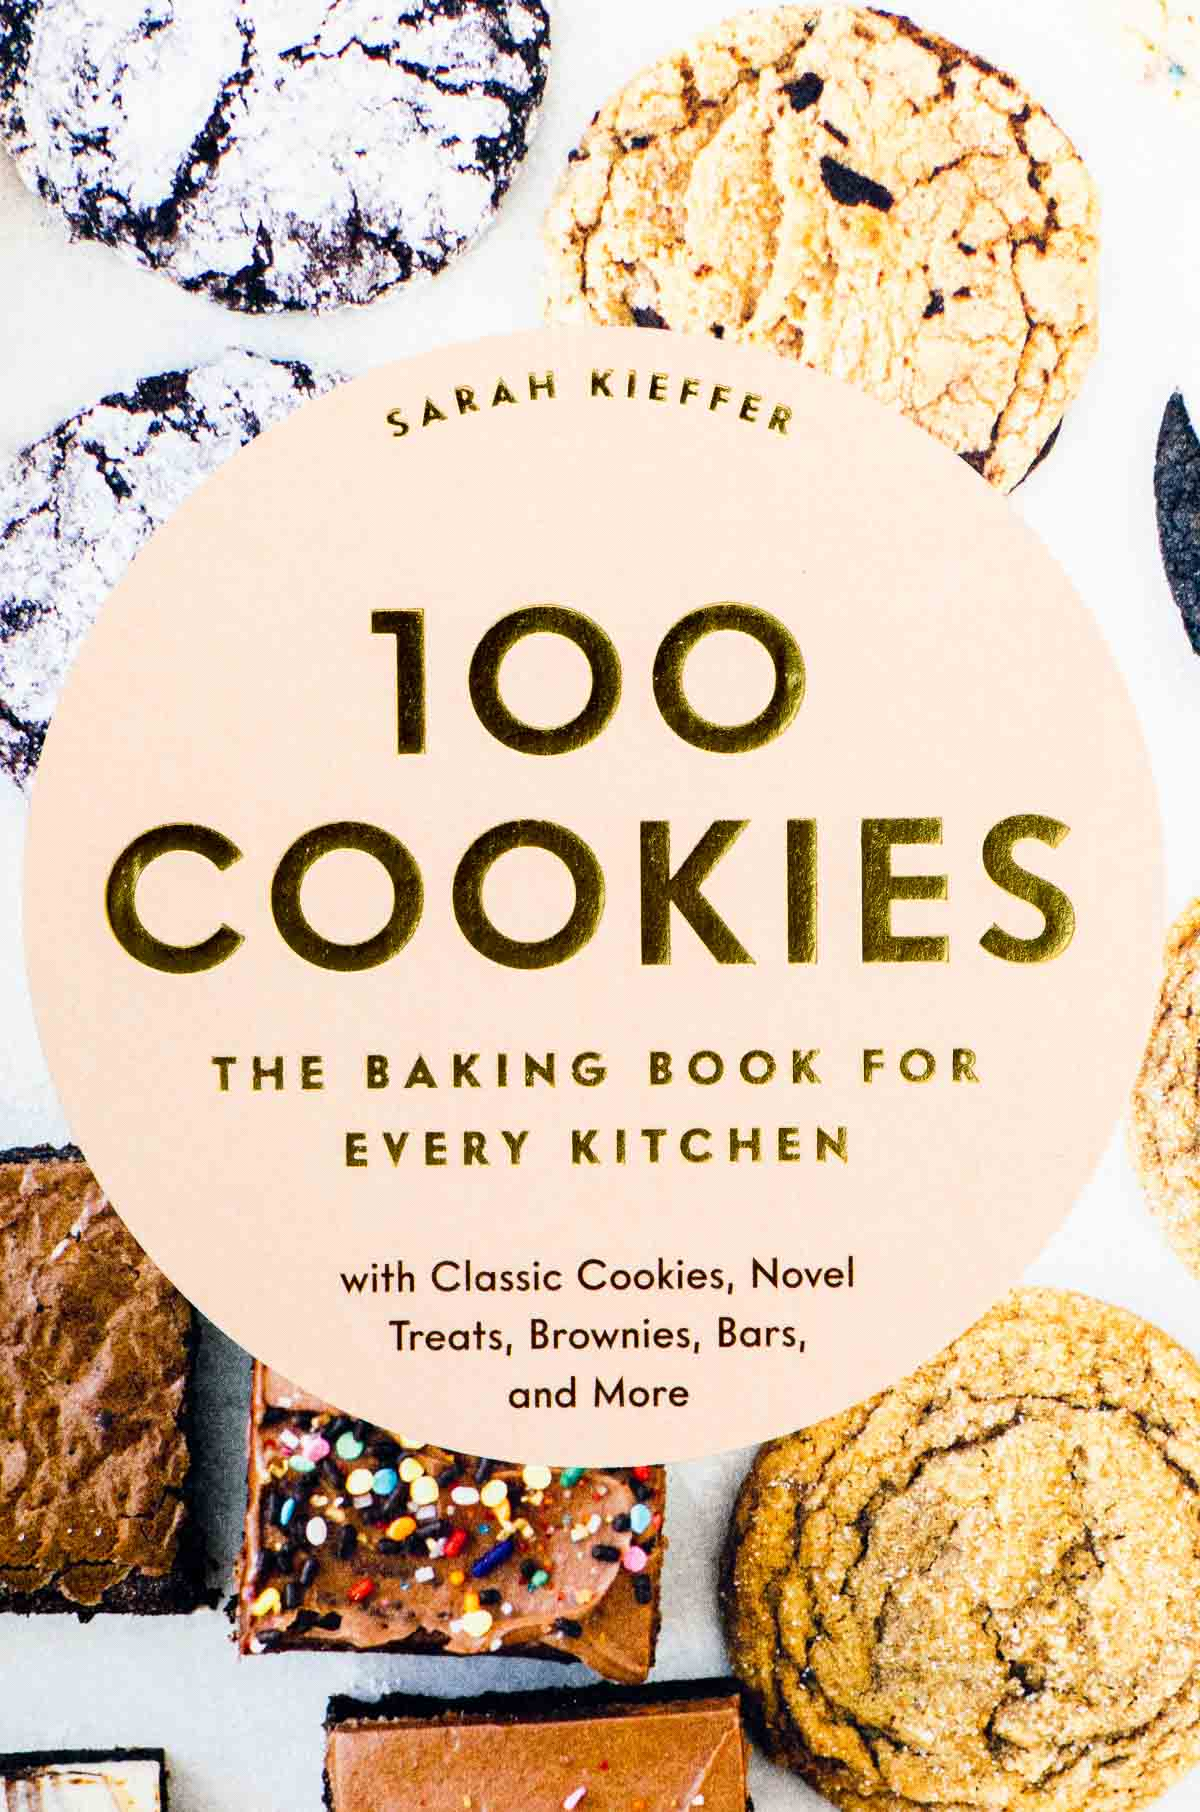 100 Cookies: The Baking Book for Every Kitchen